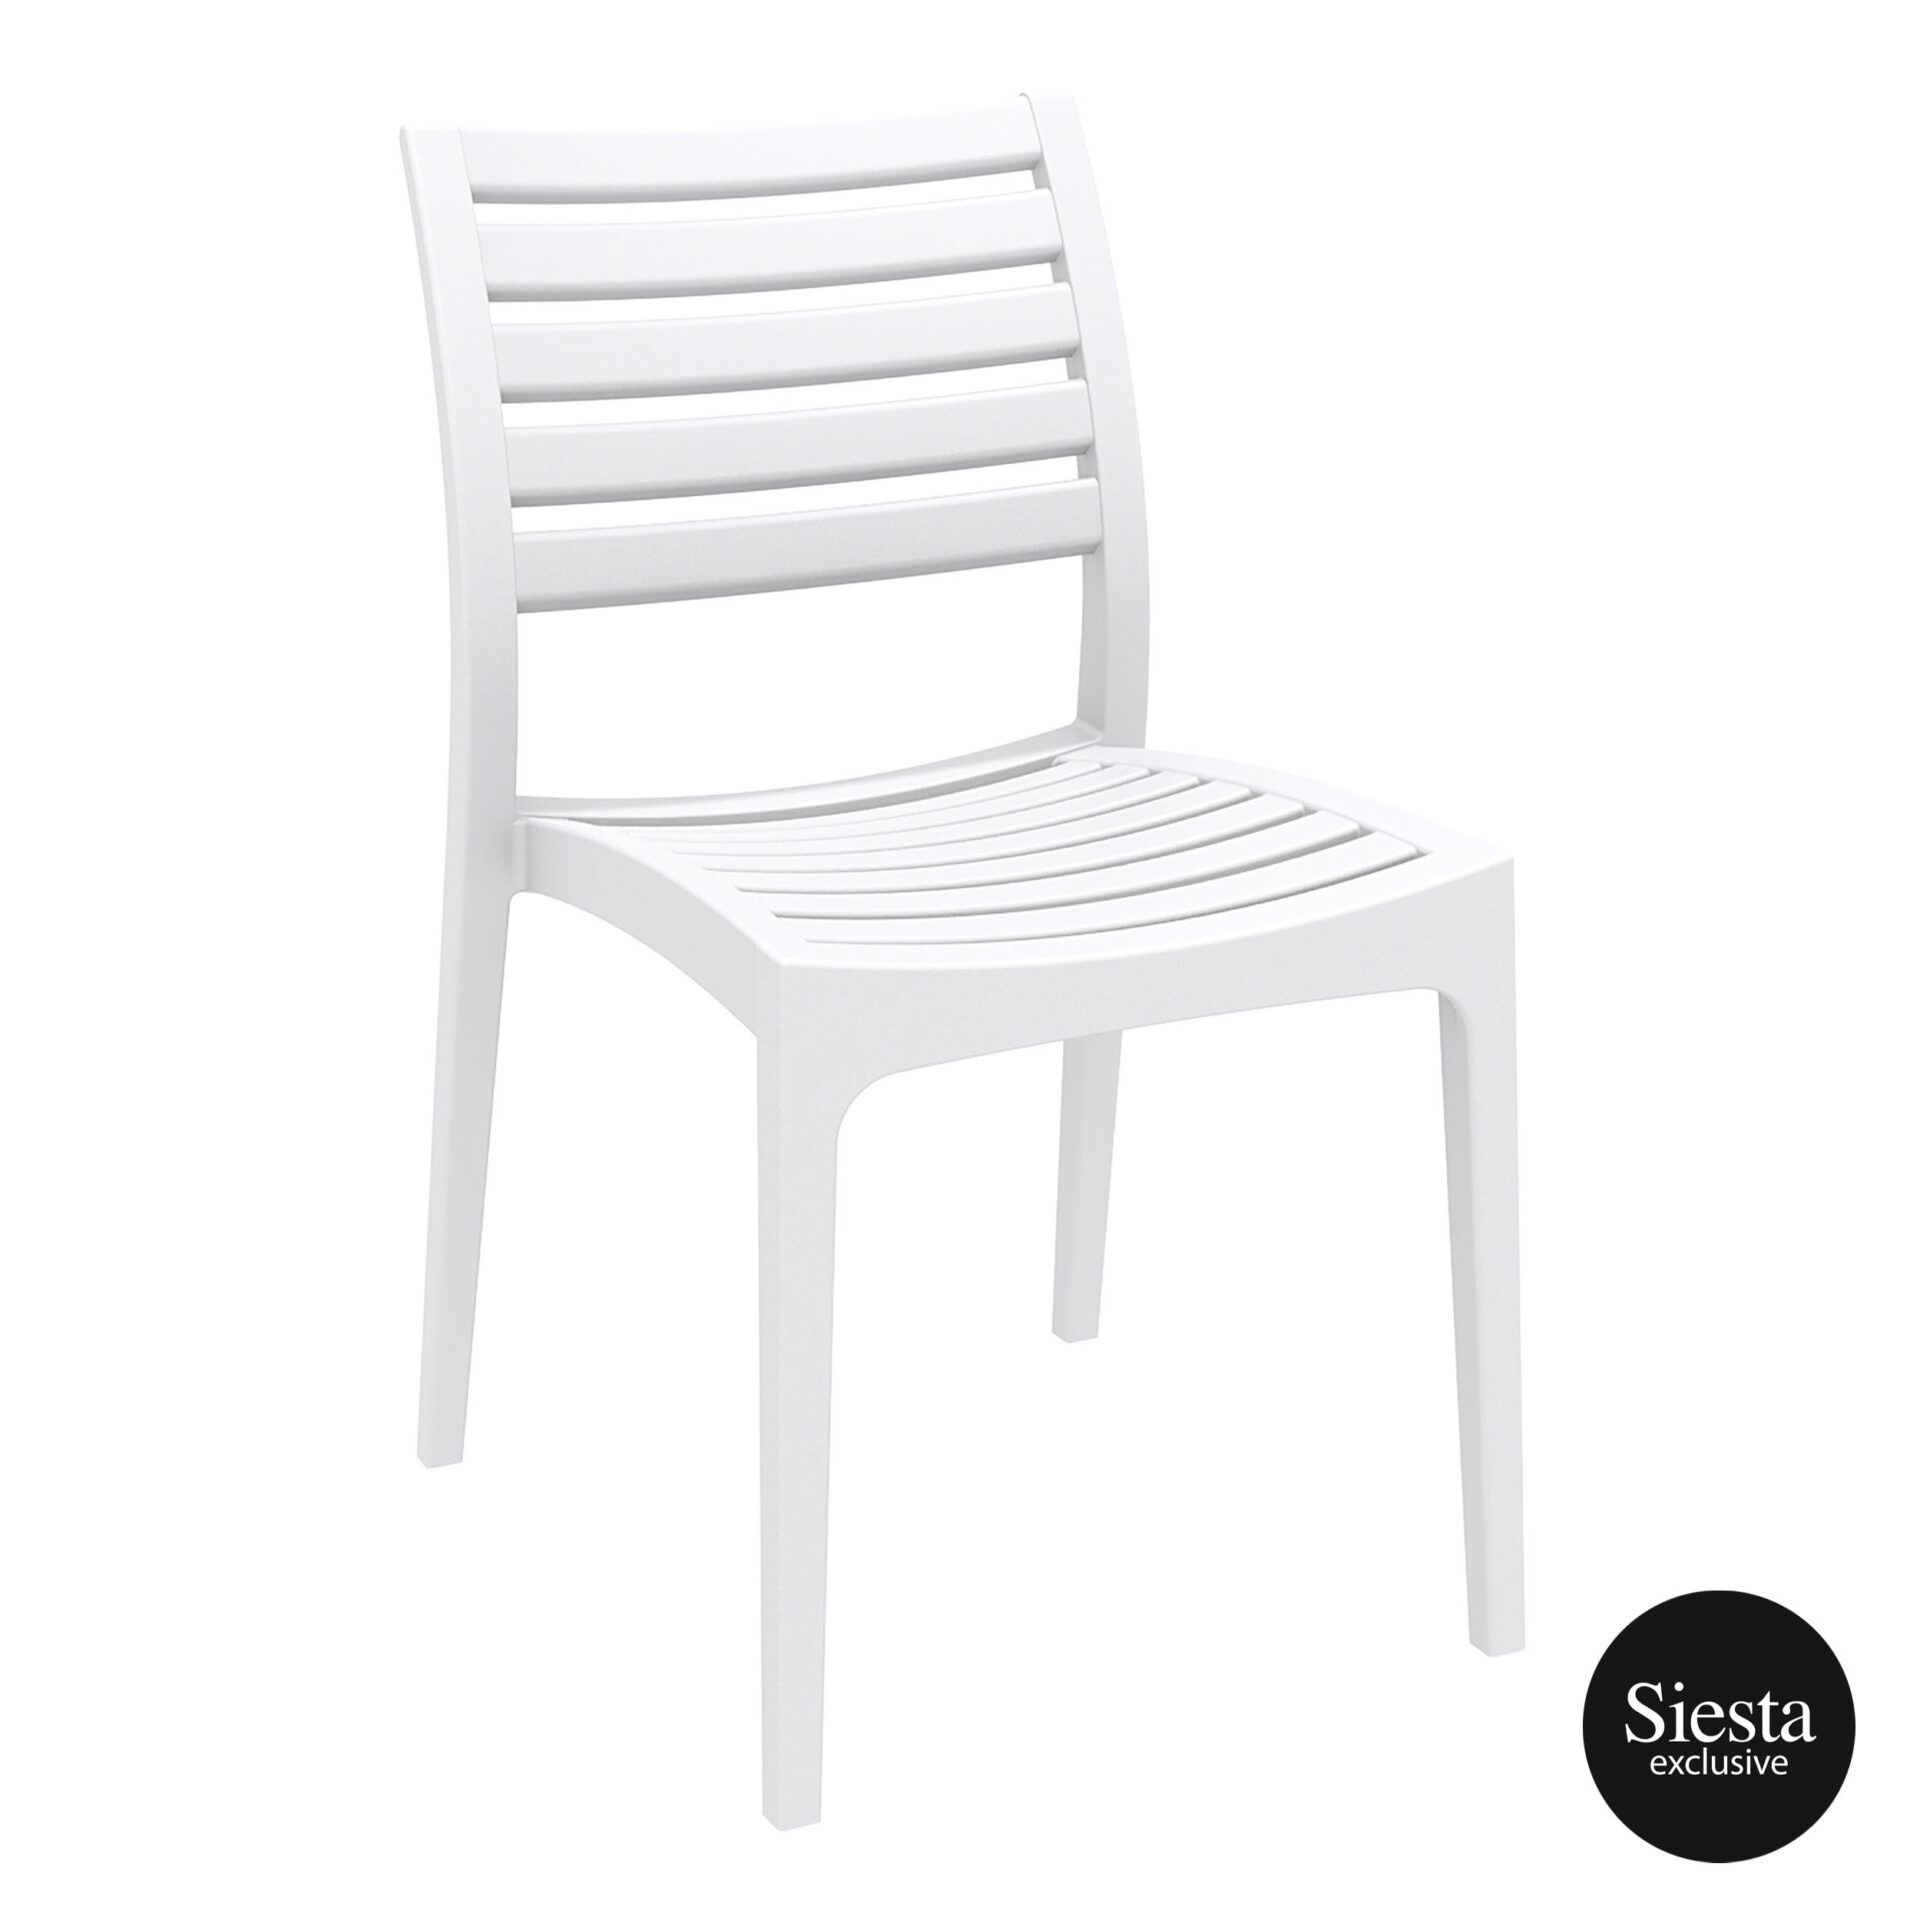 Outdoor Ares Chair white front side